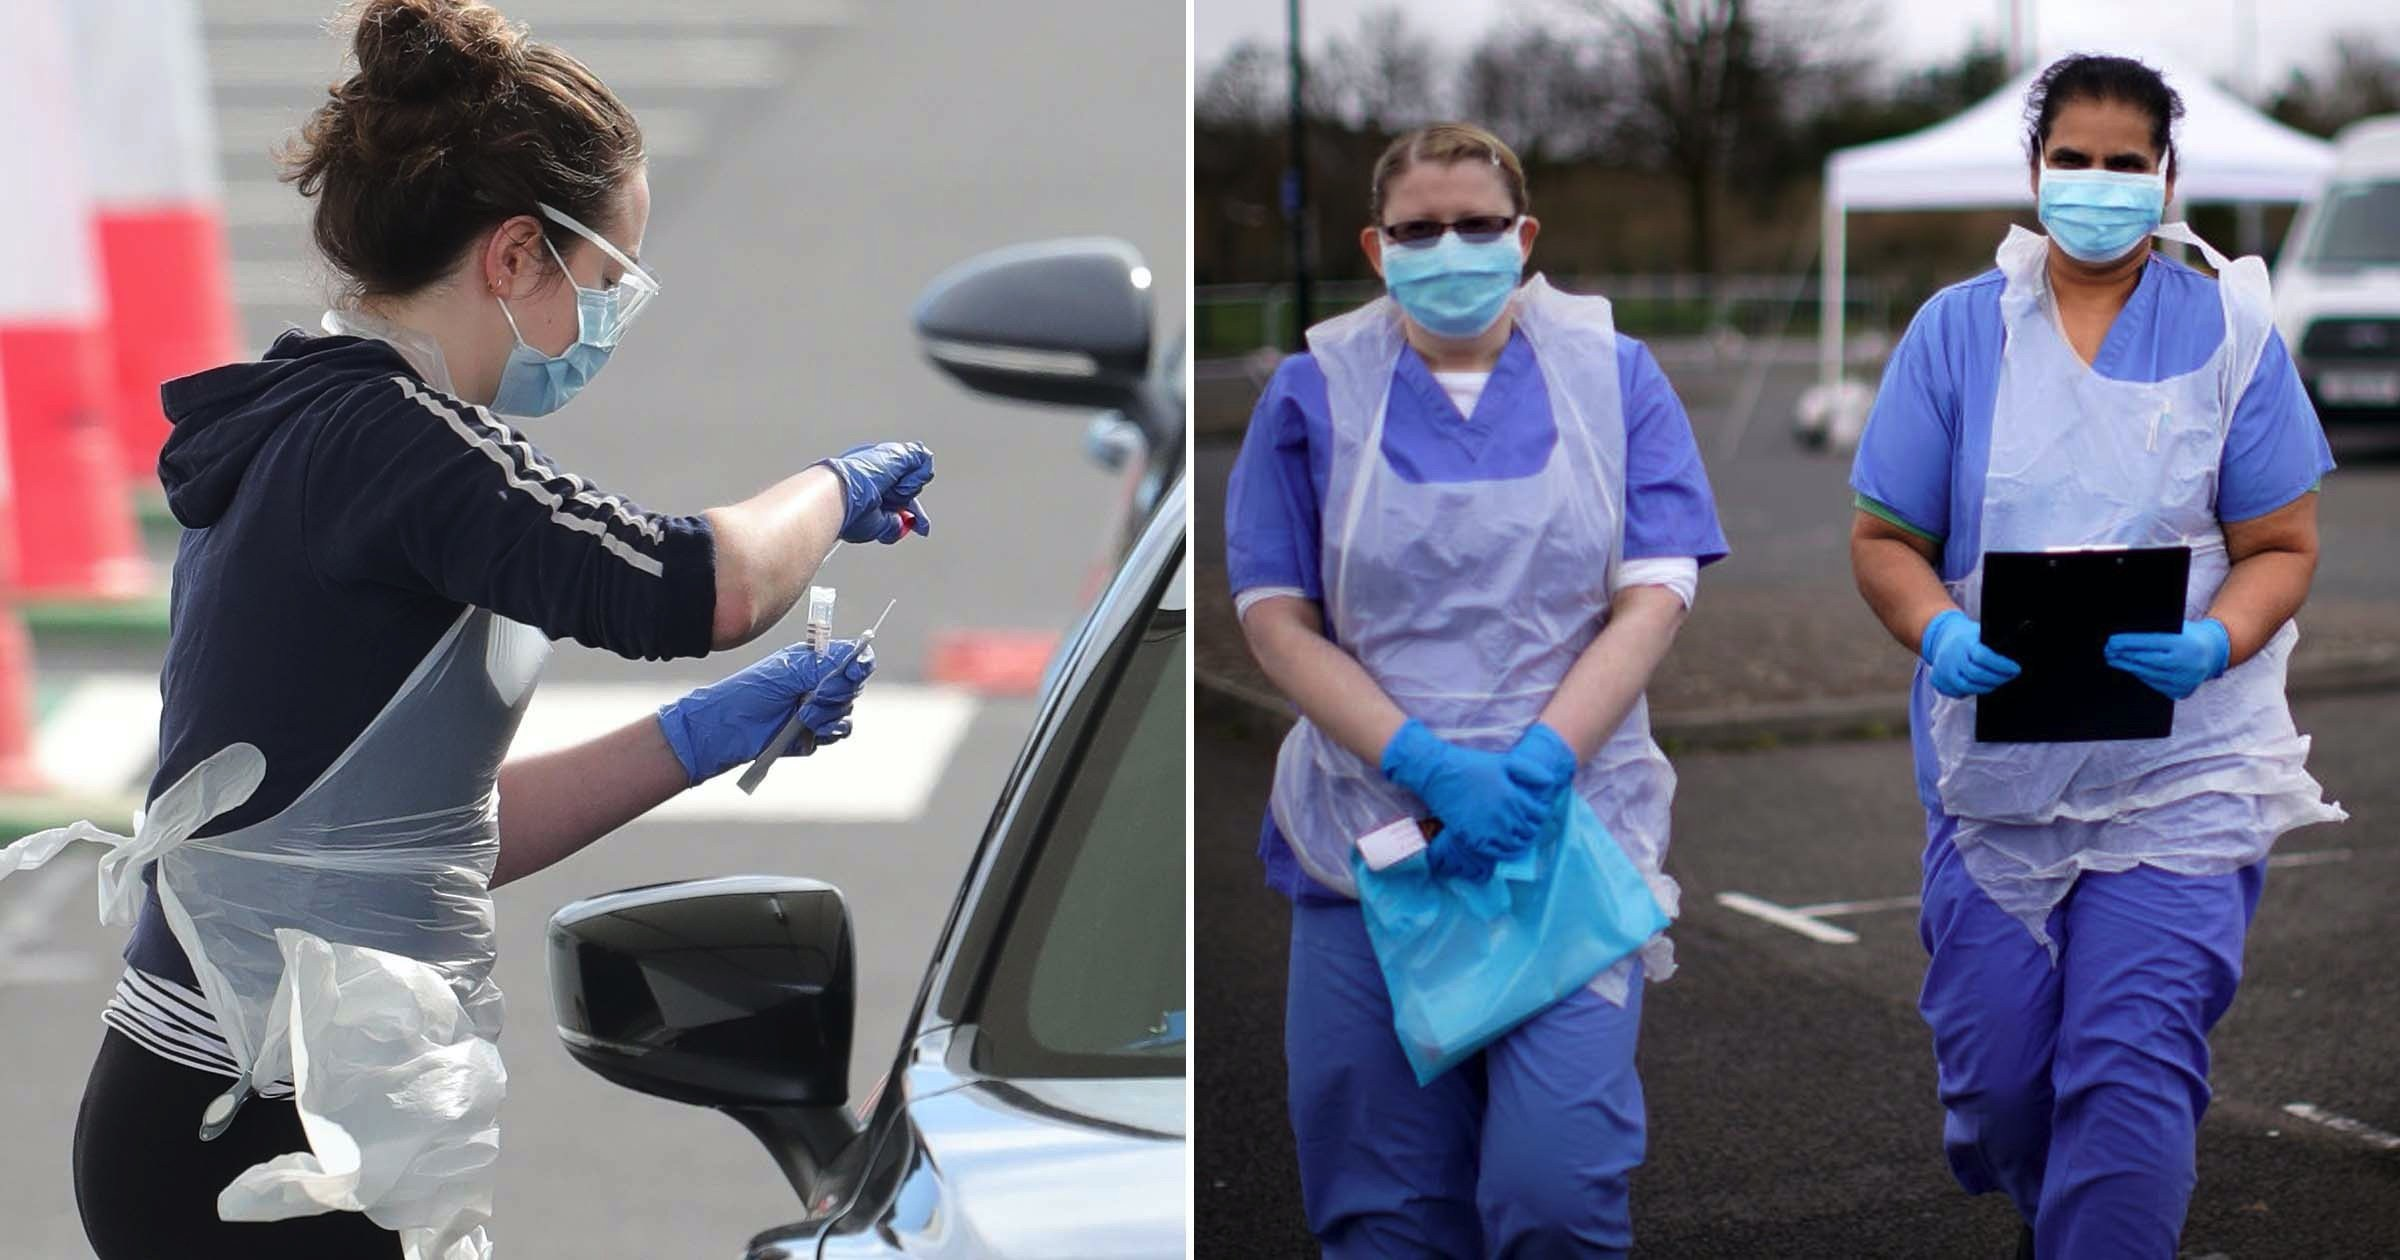 Nurses told 'don't treat patients' if they're given inadequate PPE